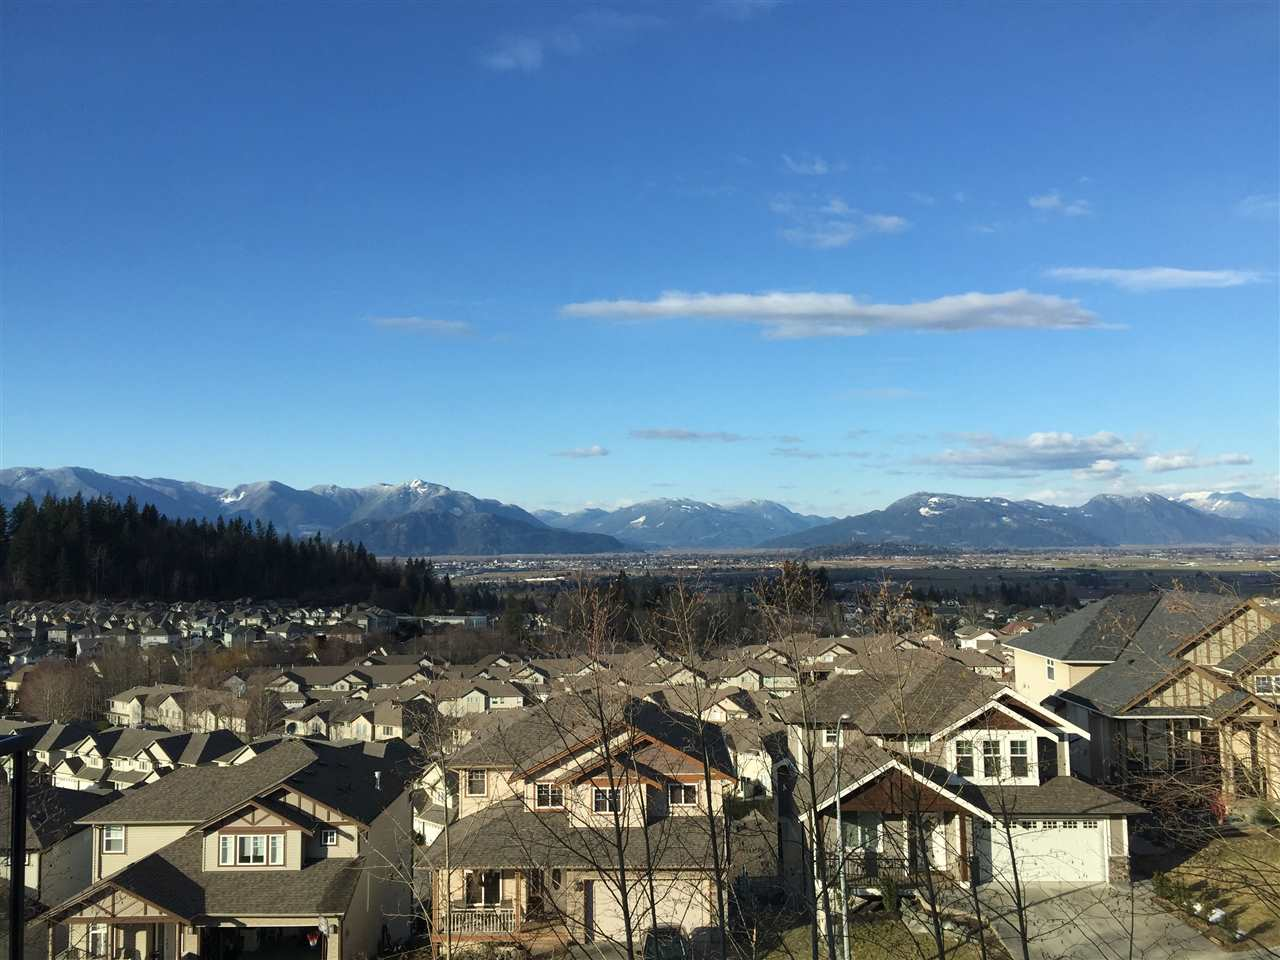 Great view of Chilliwack